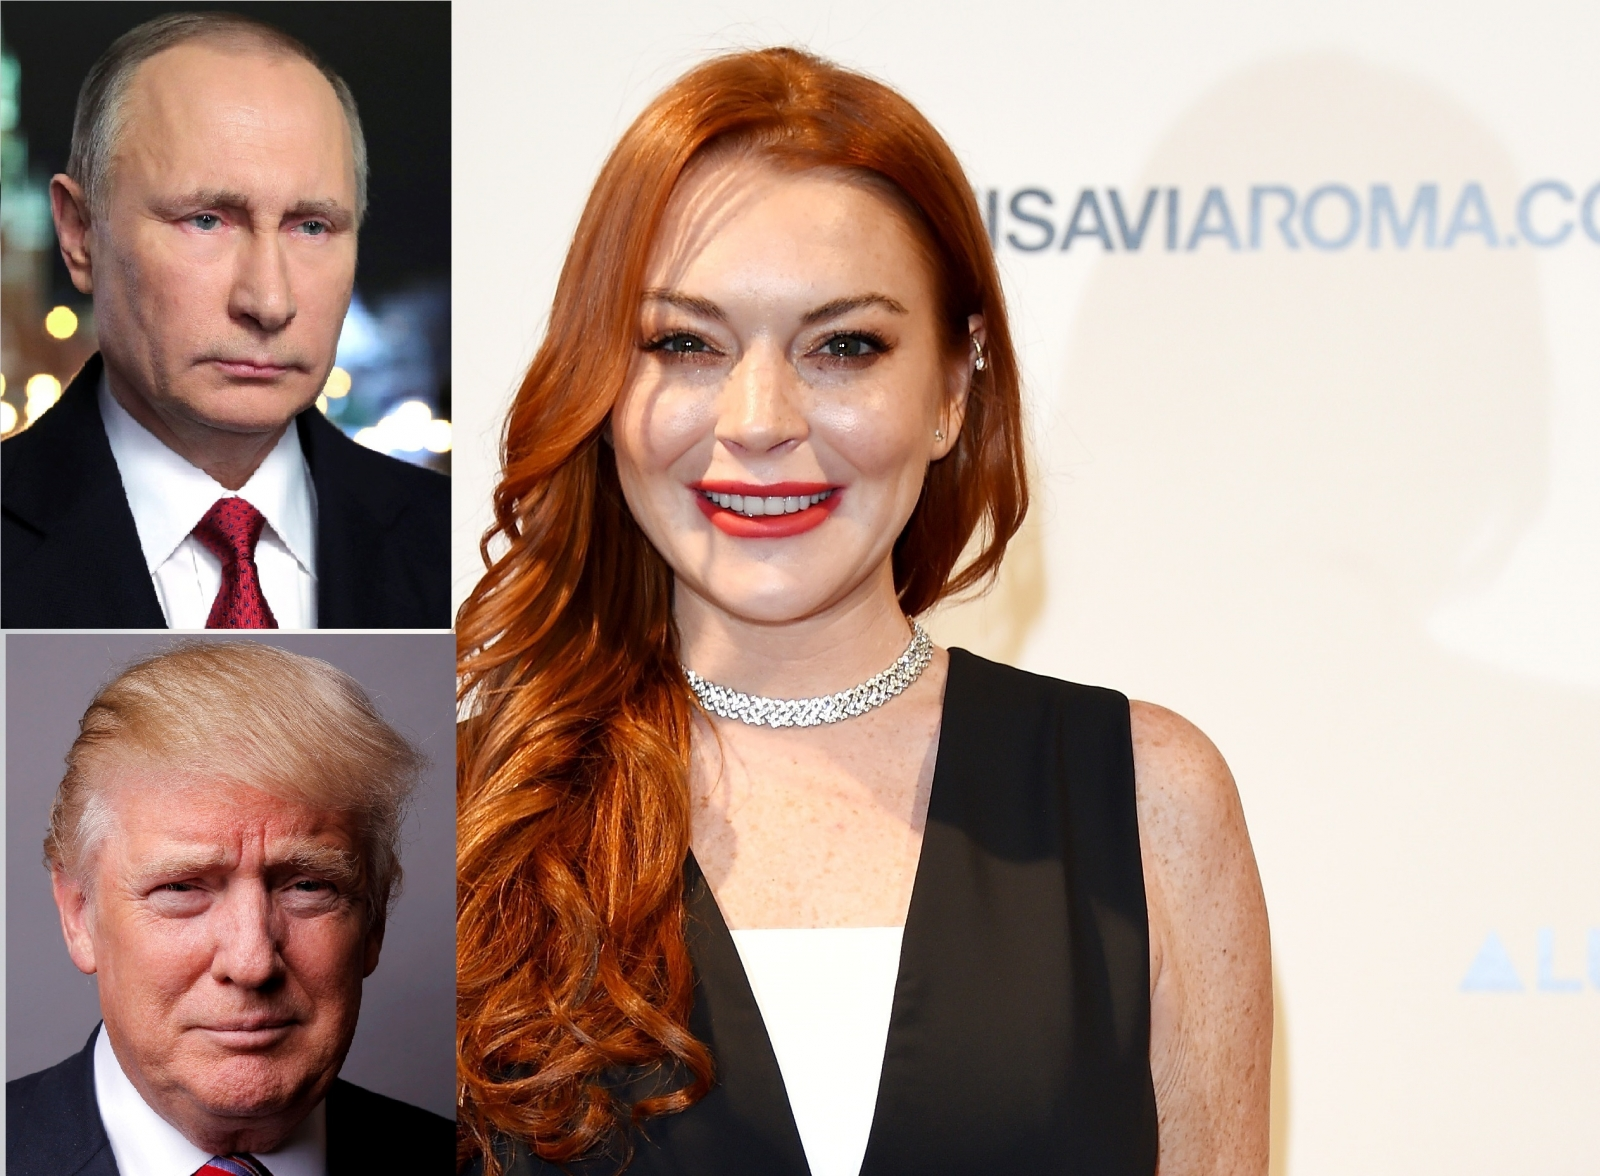 Lindsay Lohan wants to meet with presidents